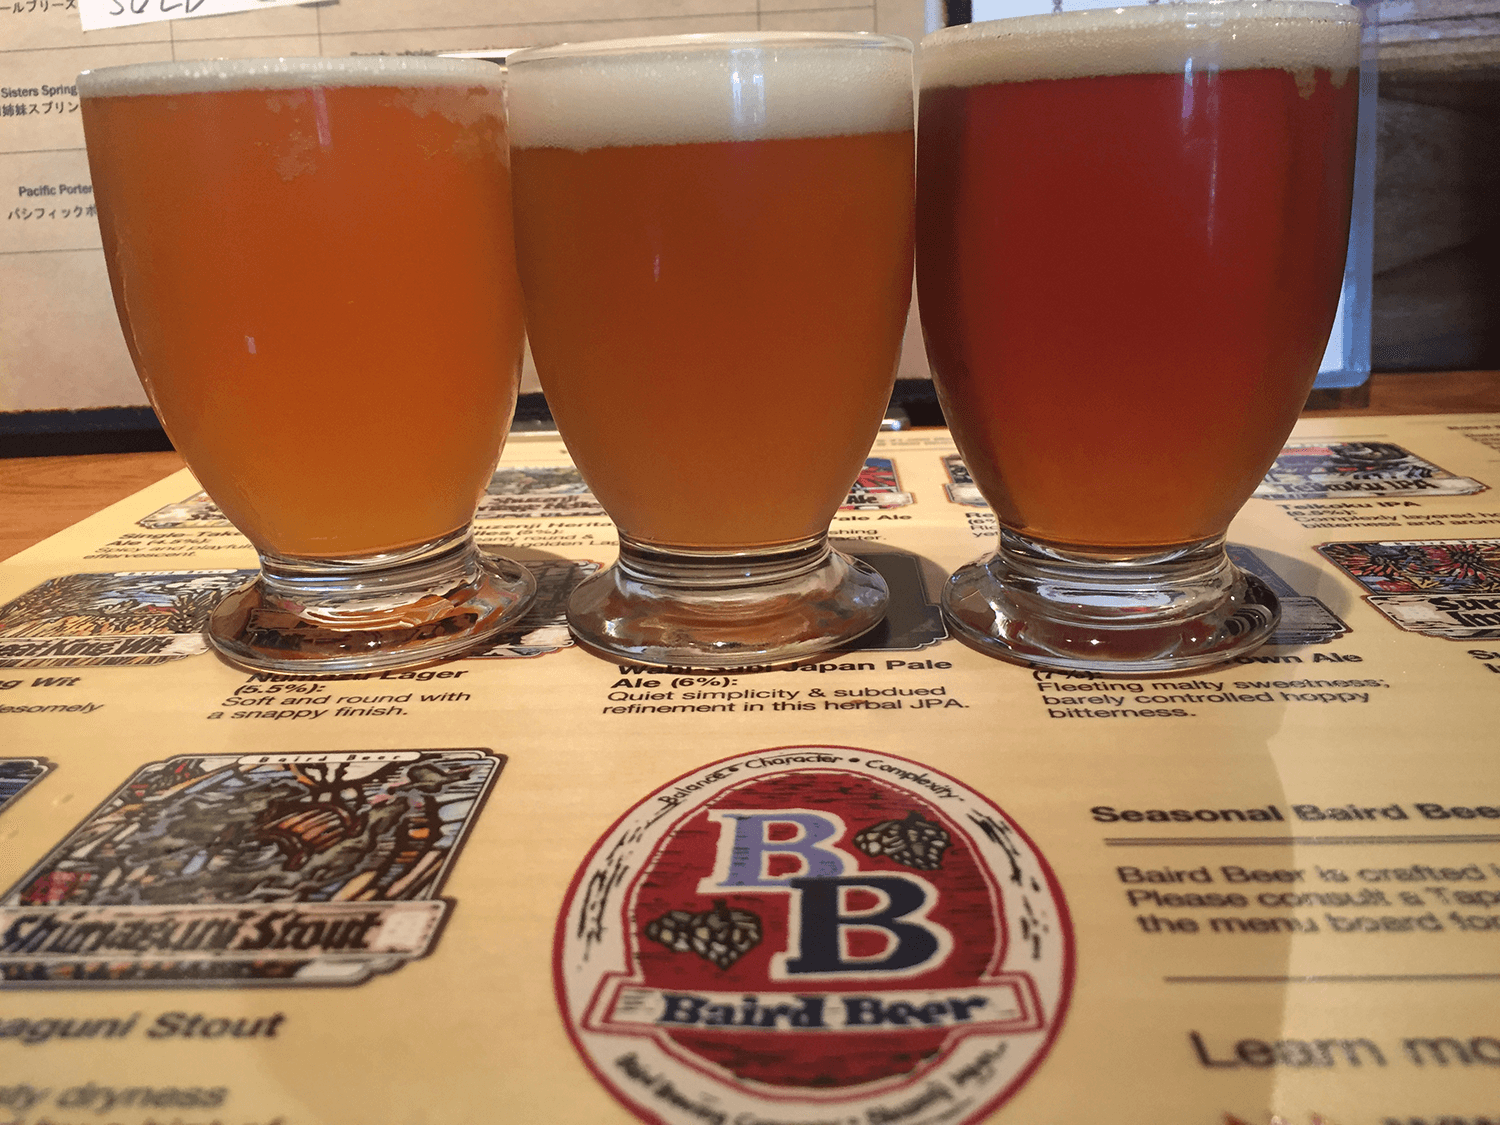 Try the sampler beer since you'll be able to taste three different types of beers!